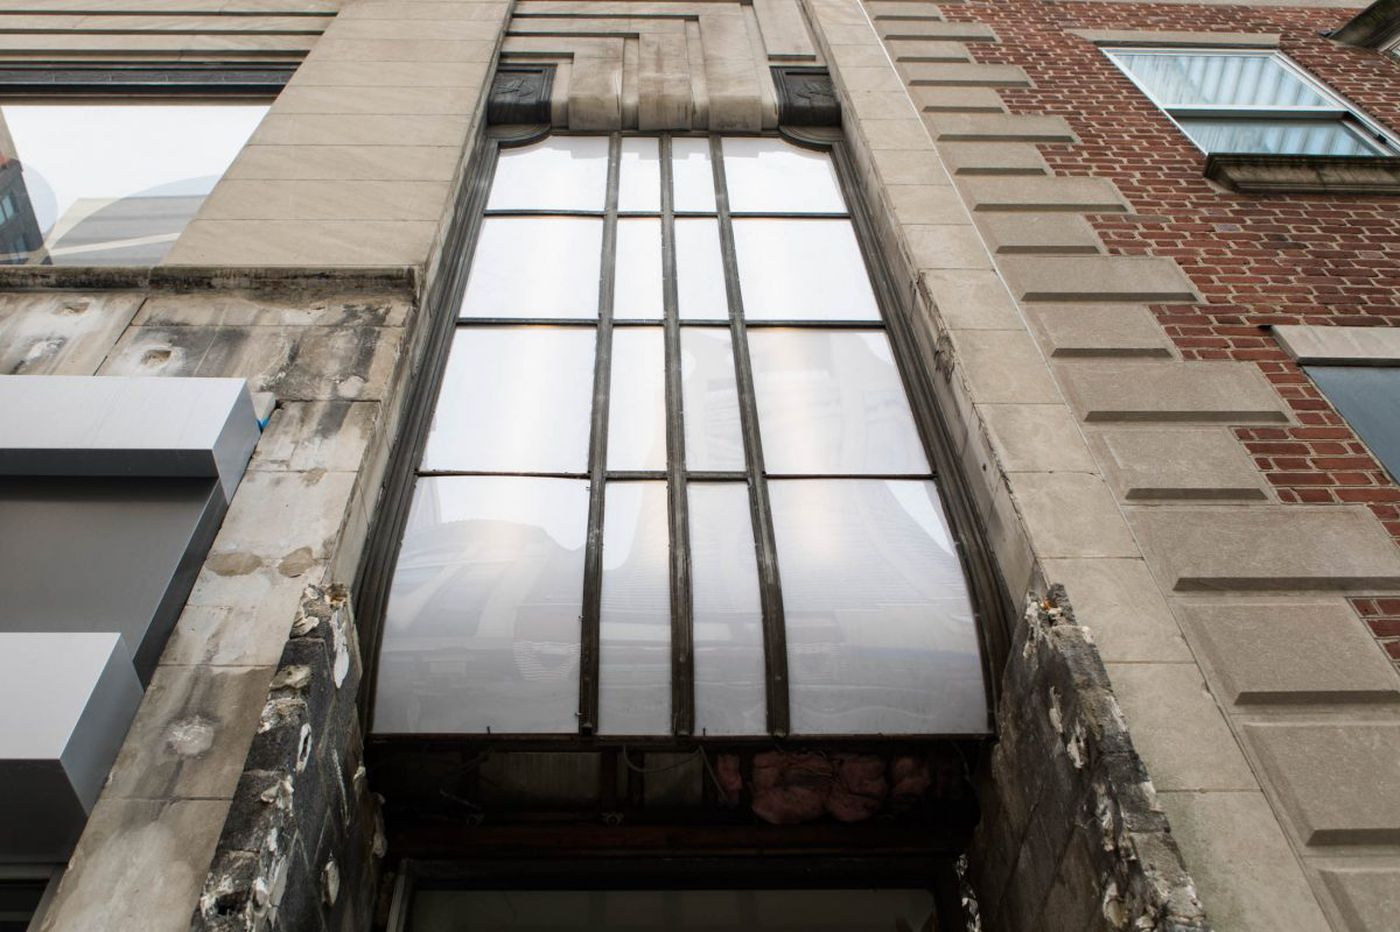 Discovering an art deco Kresge's behind a Center City storefront